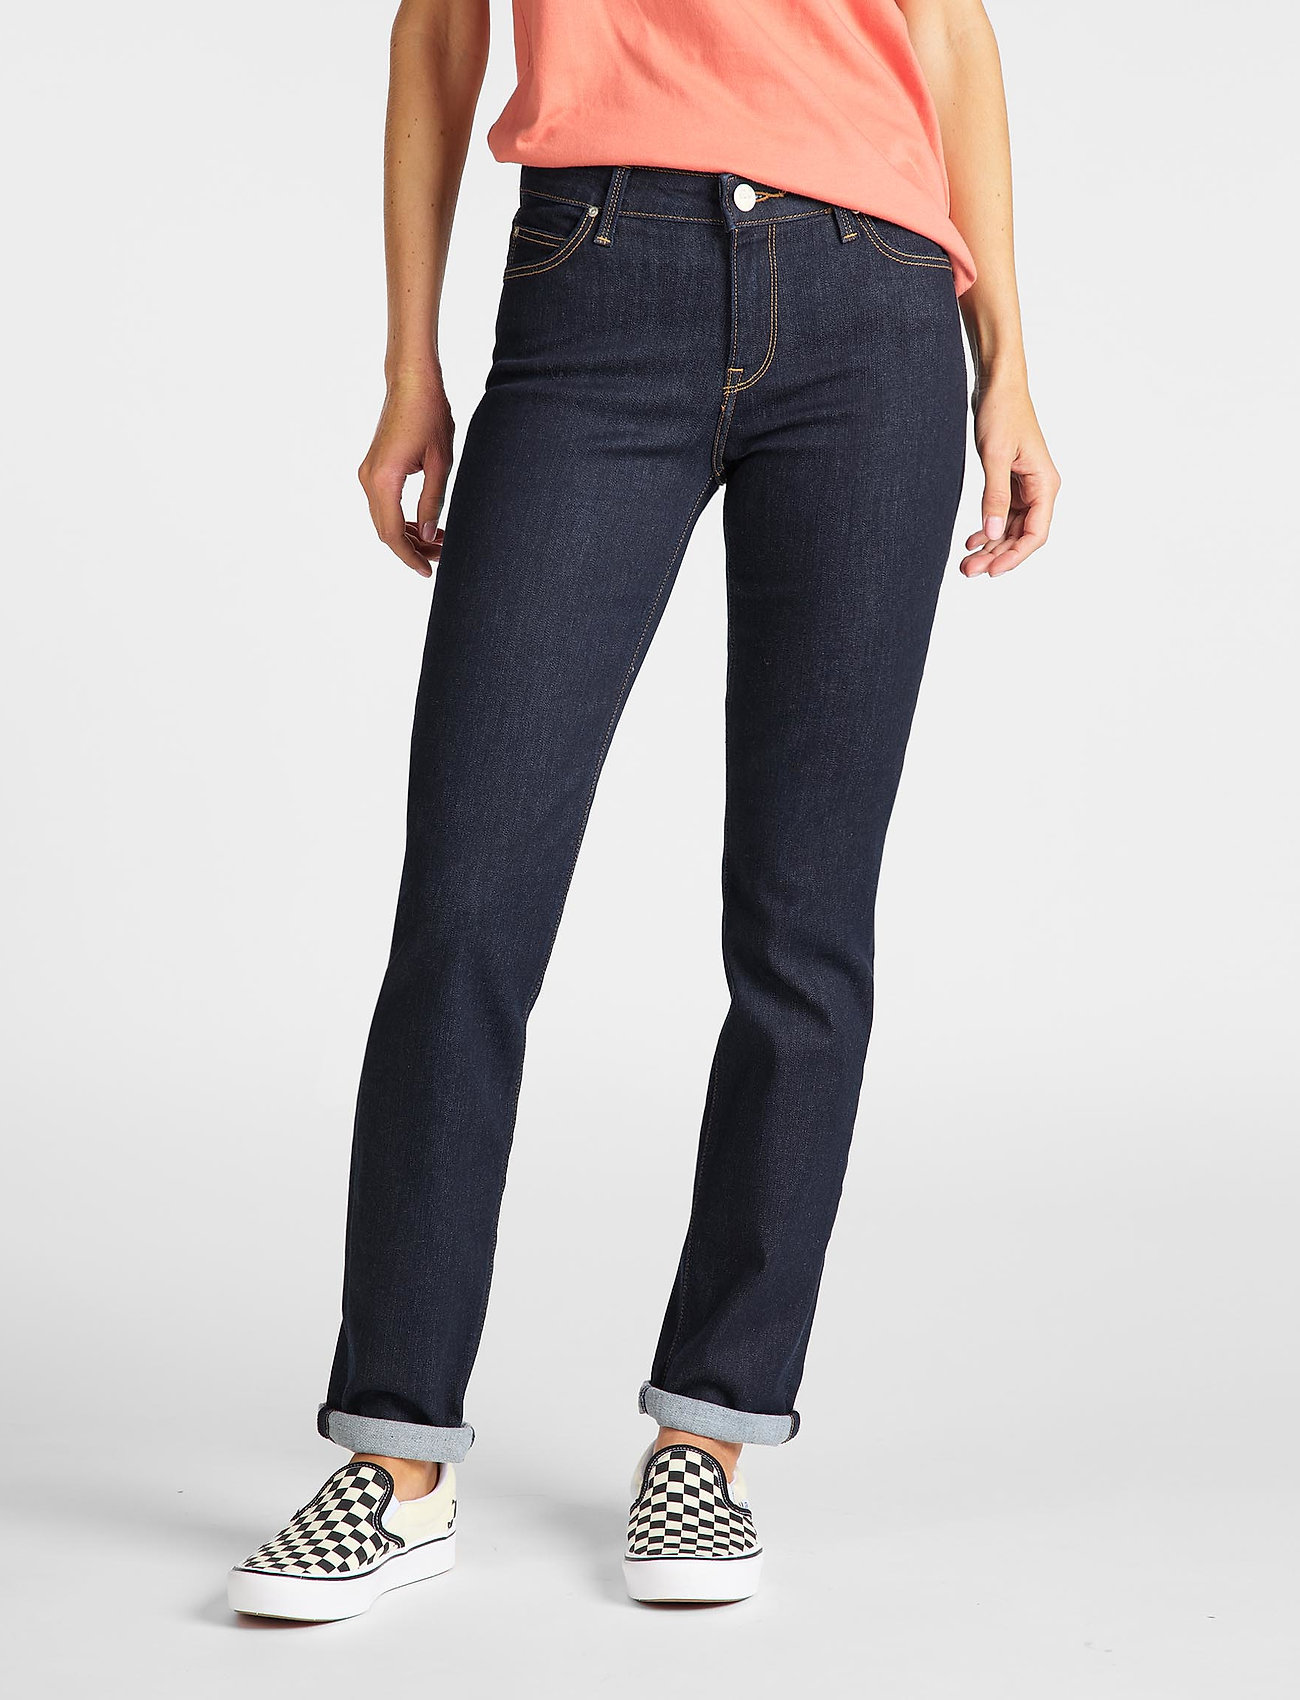 Lee Jeans - Marion Straight - straight jeans - rinse - 0